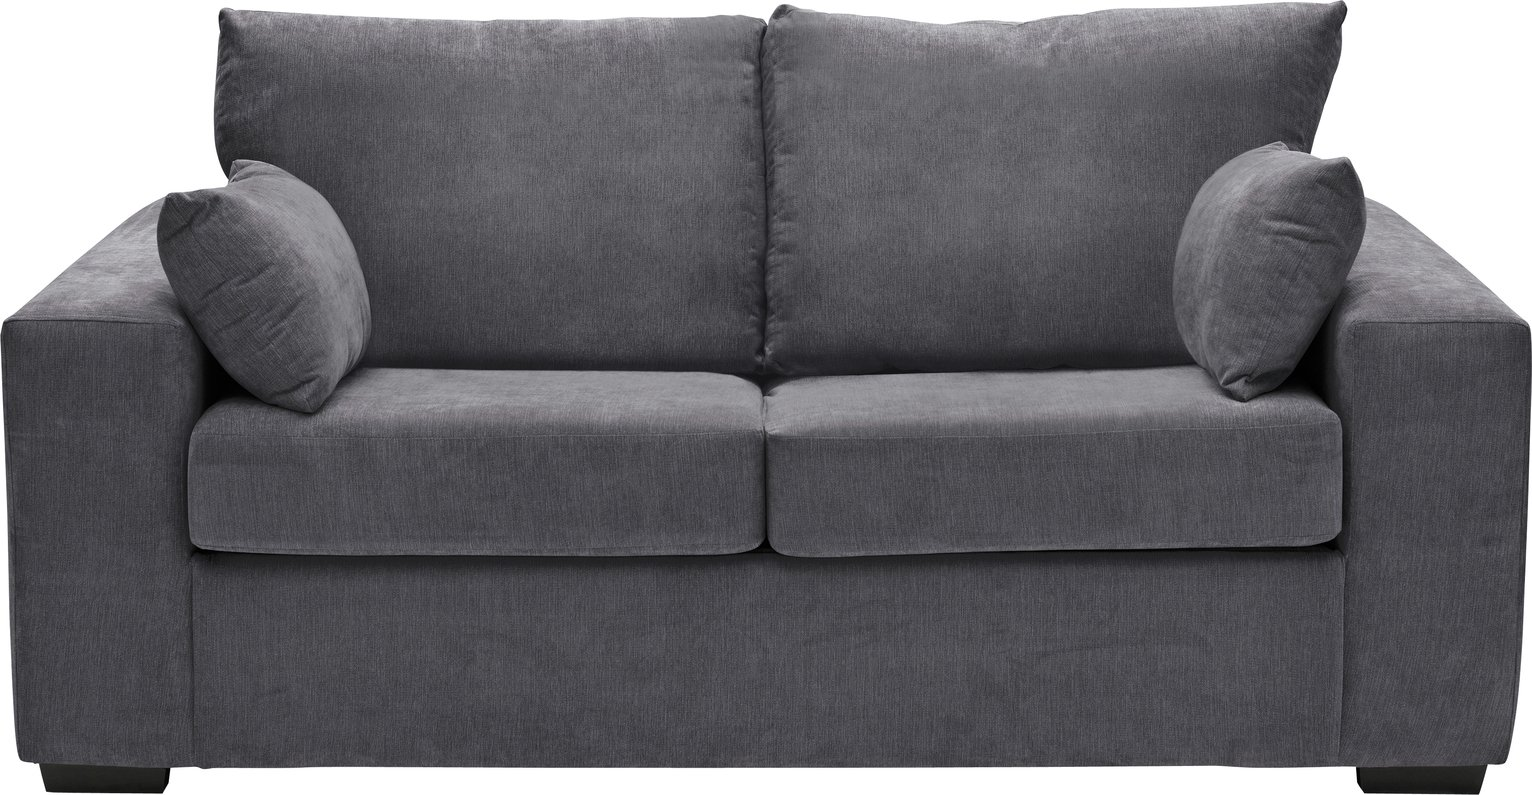 Argos Home -  - Eton - 2 Seater Fabric - Sofa Bed - Charcoal from Argos Home